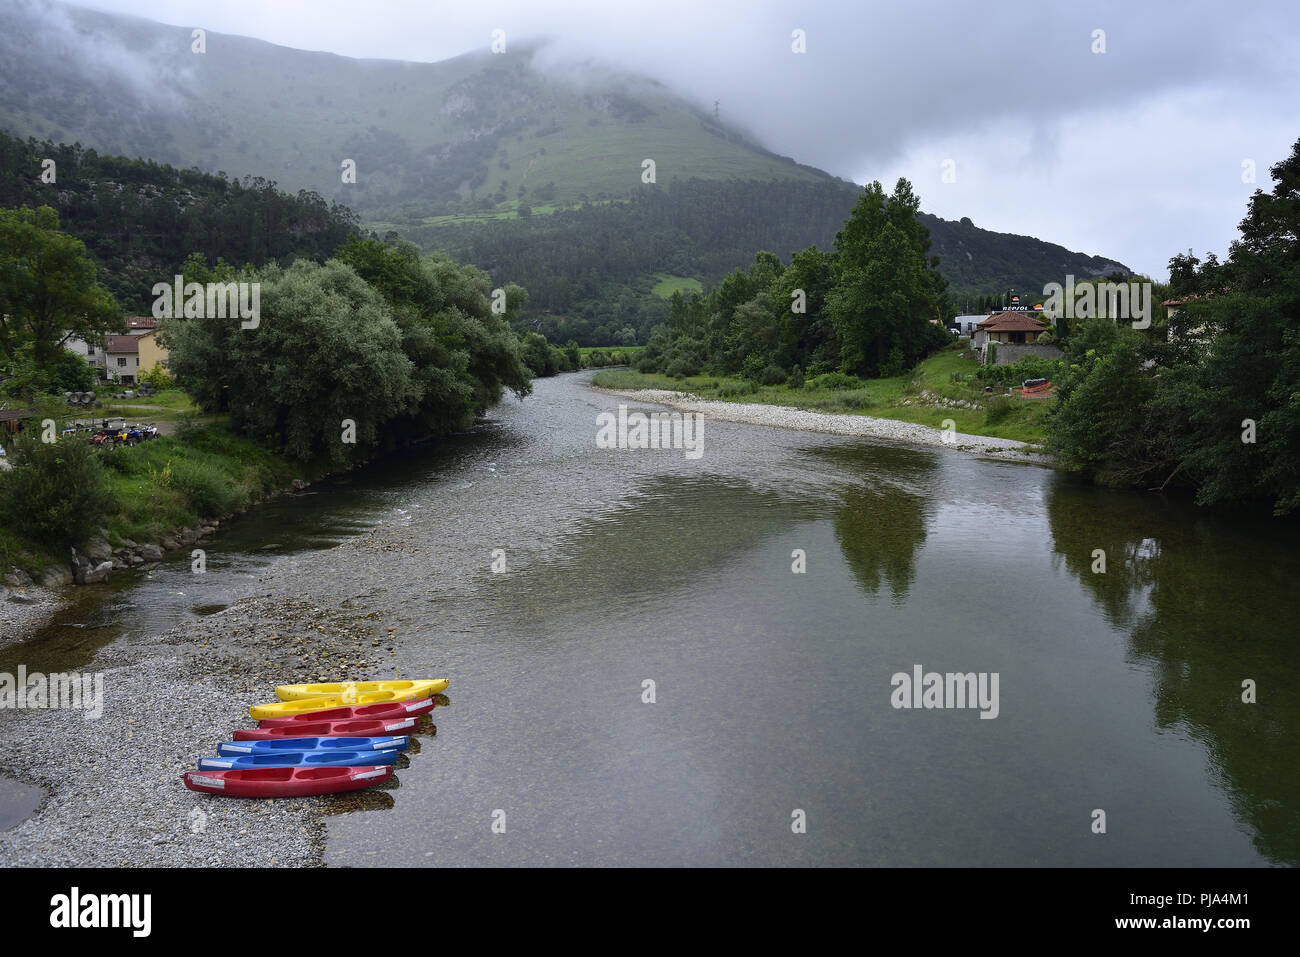 Kayaks by the River Deva in Panes, Picos de Europa, Asturias, northern Spain. Mist is beginning to lift from the hills. - Stock Image